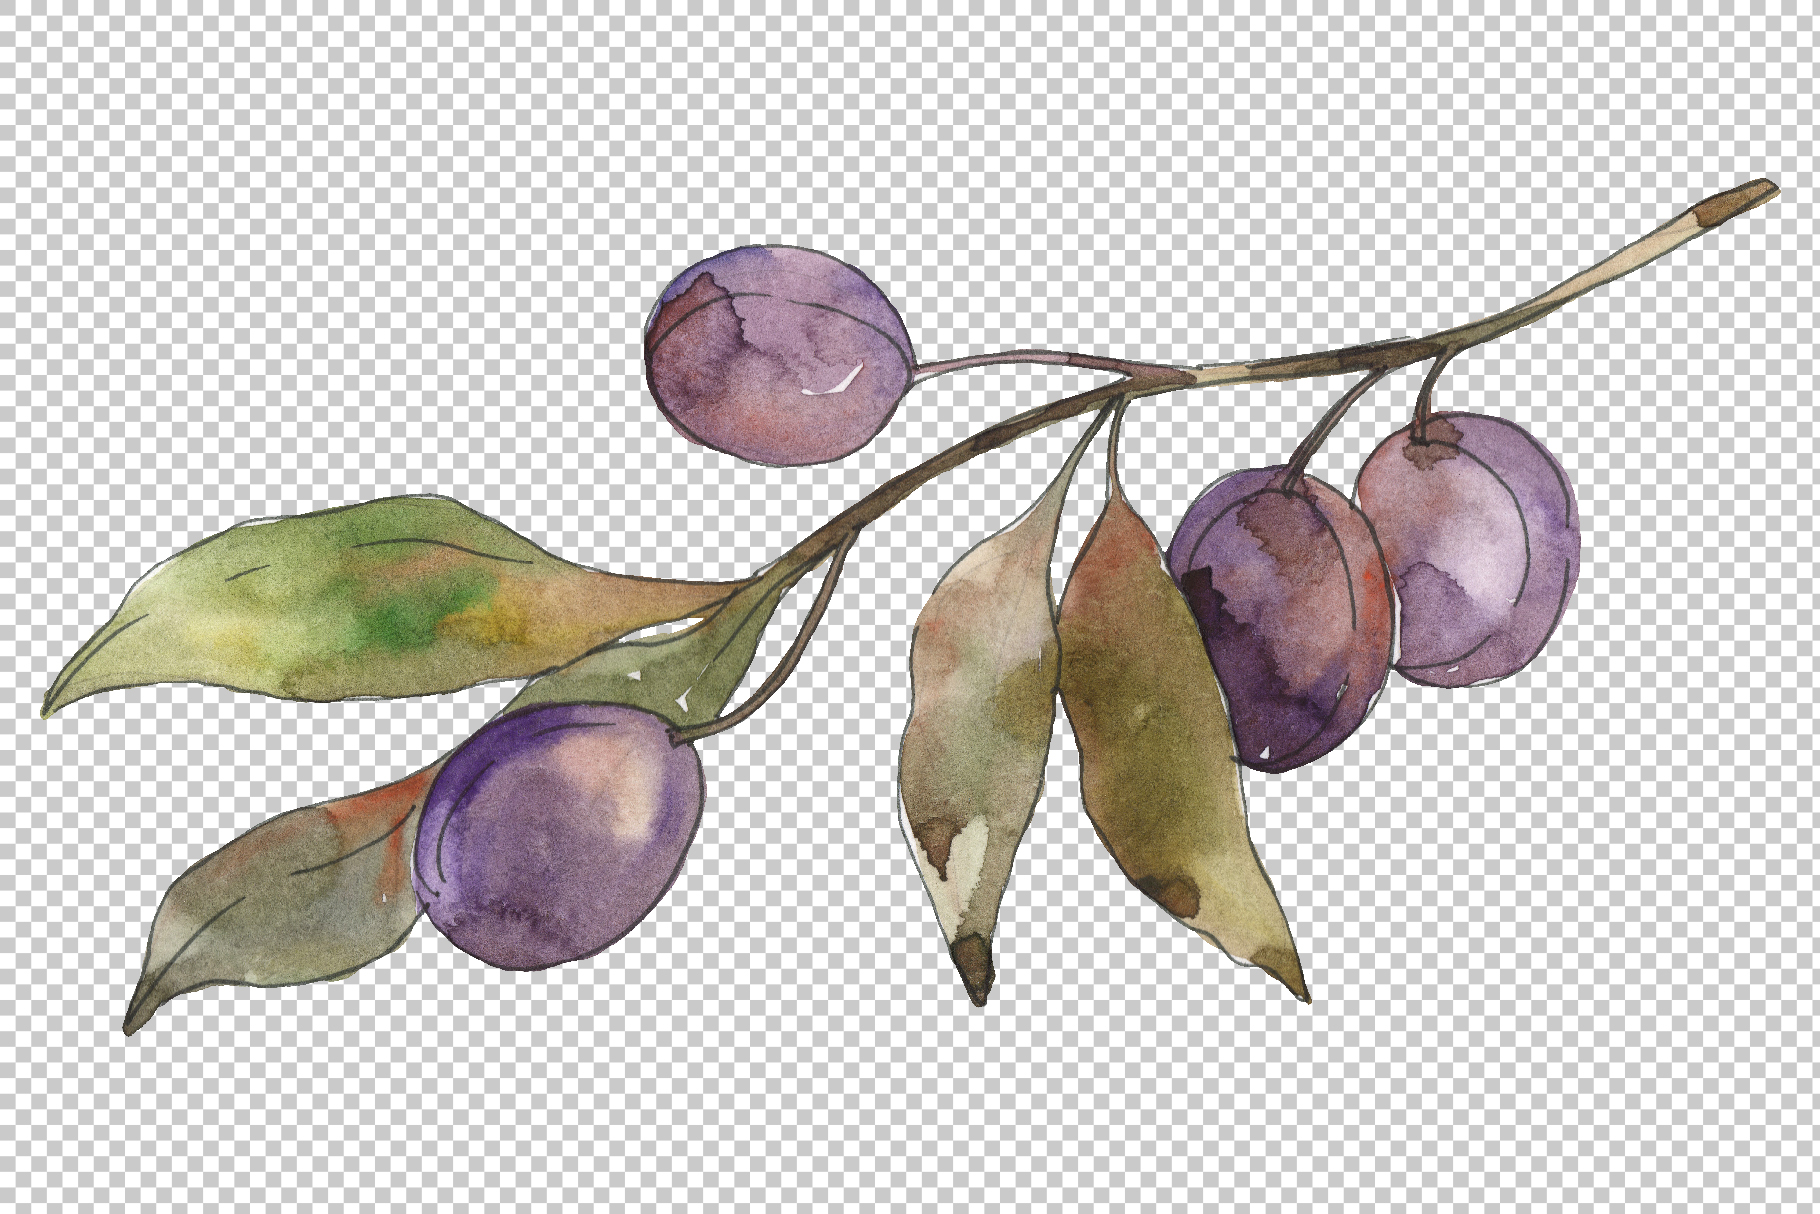 Olives 3 Watercolor png example image 2